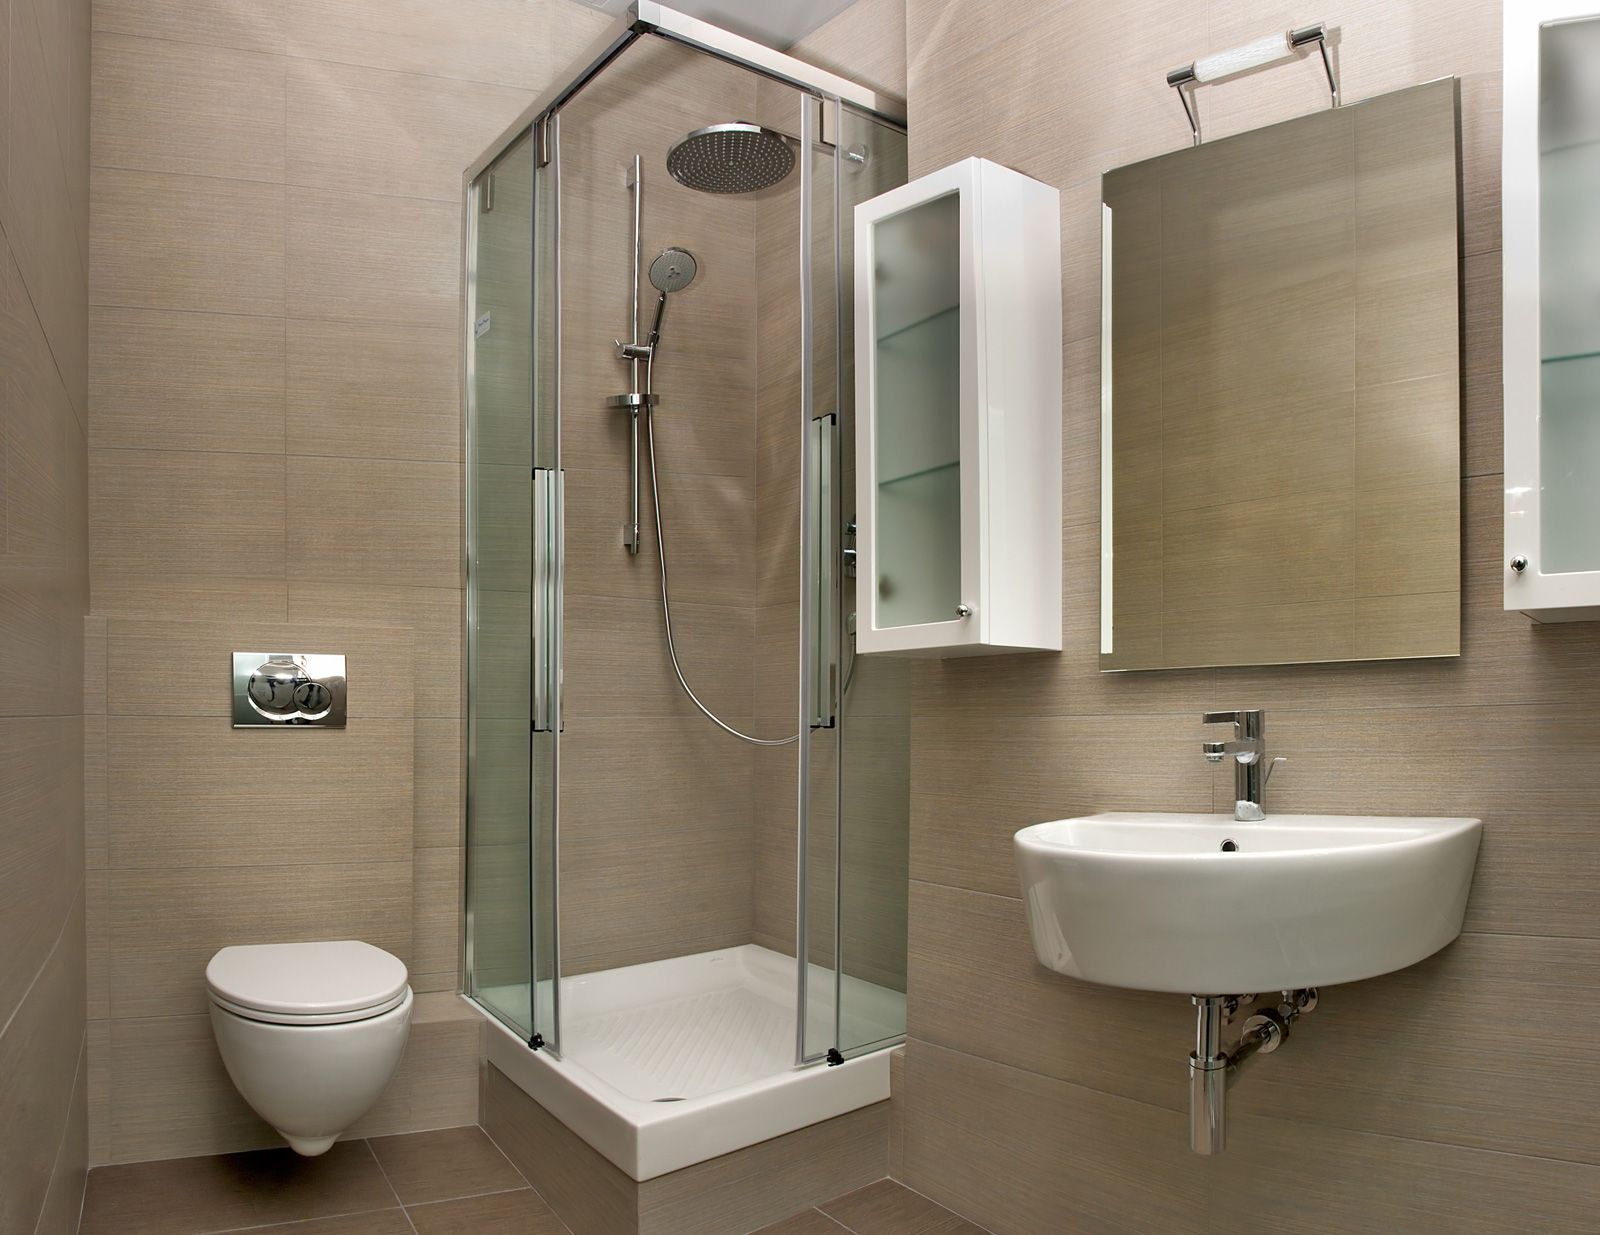 Bathroom Accessories Modern shower ideas for small bathroom to inspire you on how to decorate